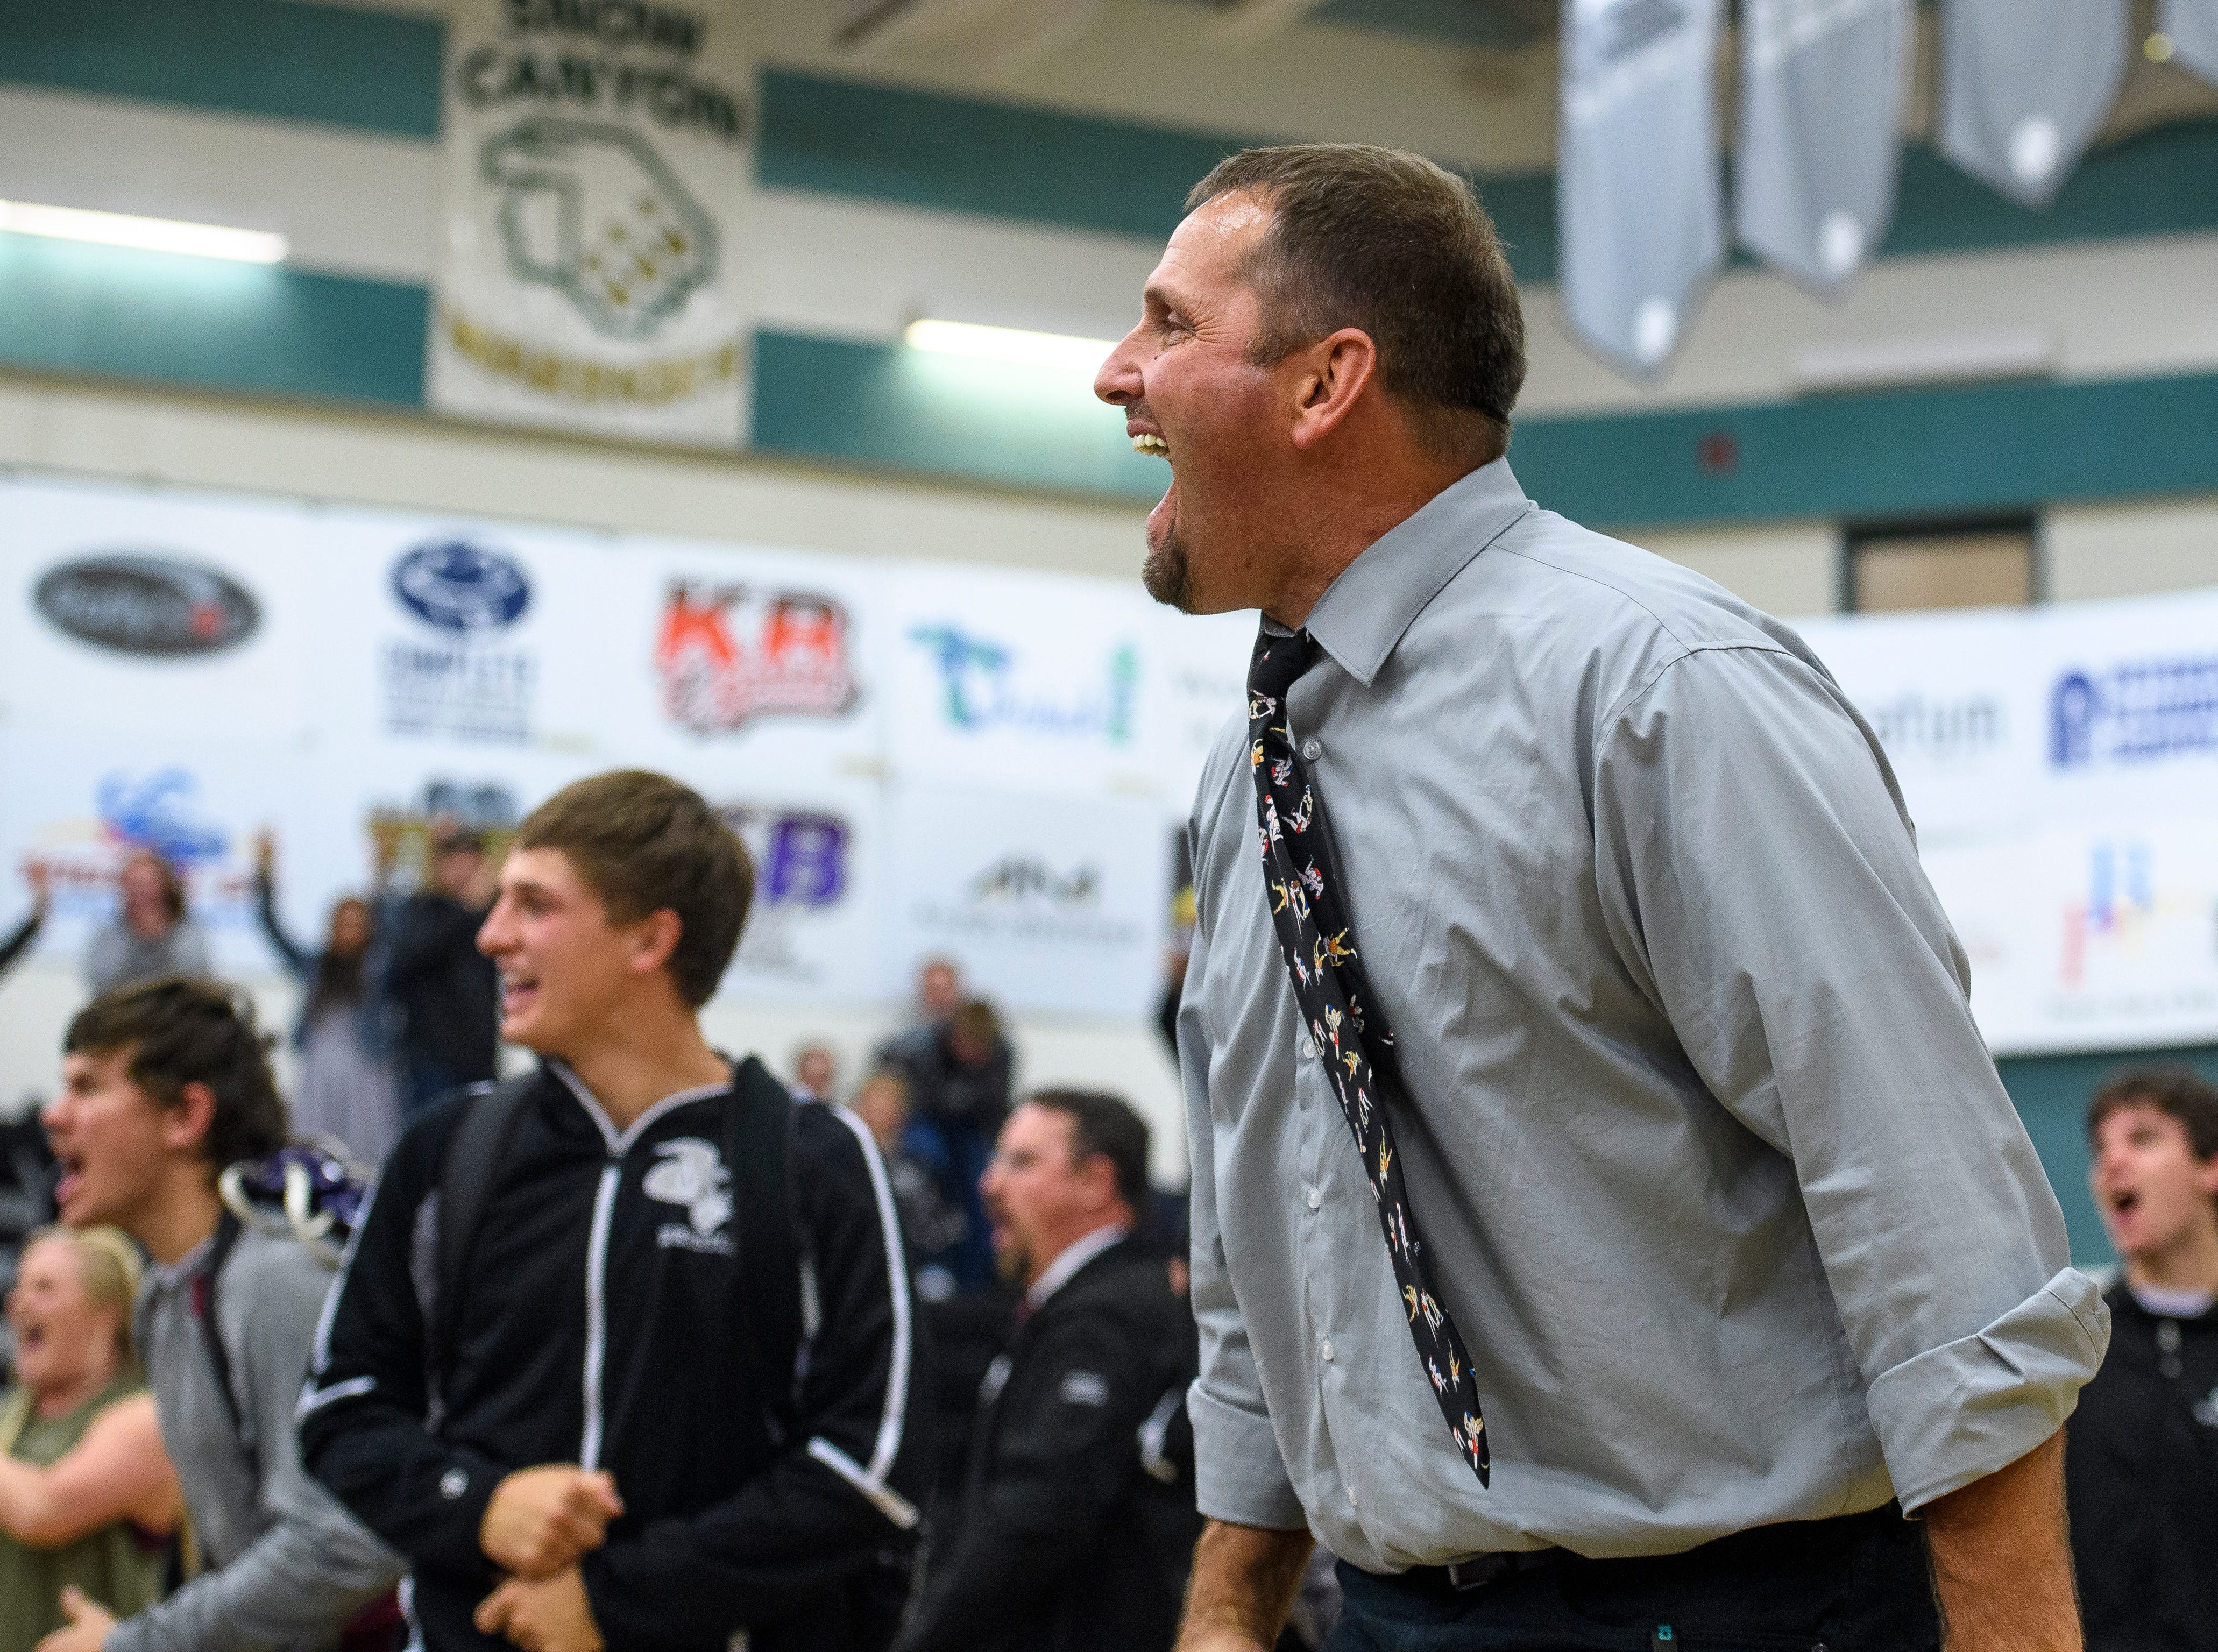 Canyon View wrestling head coach Dallas Lowry cheers as his team beats Desert Hills at CVHS Thursday, December 6, 2018. The Falcons won, 51-25.